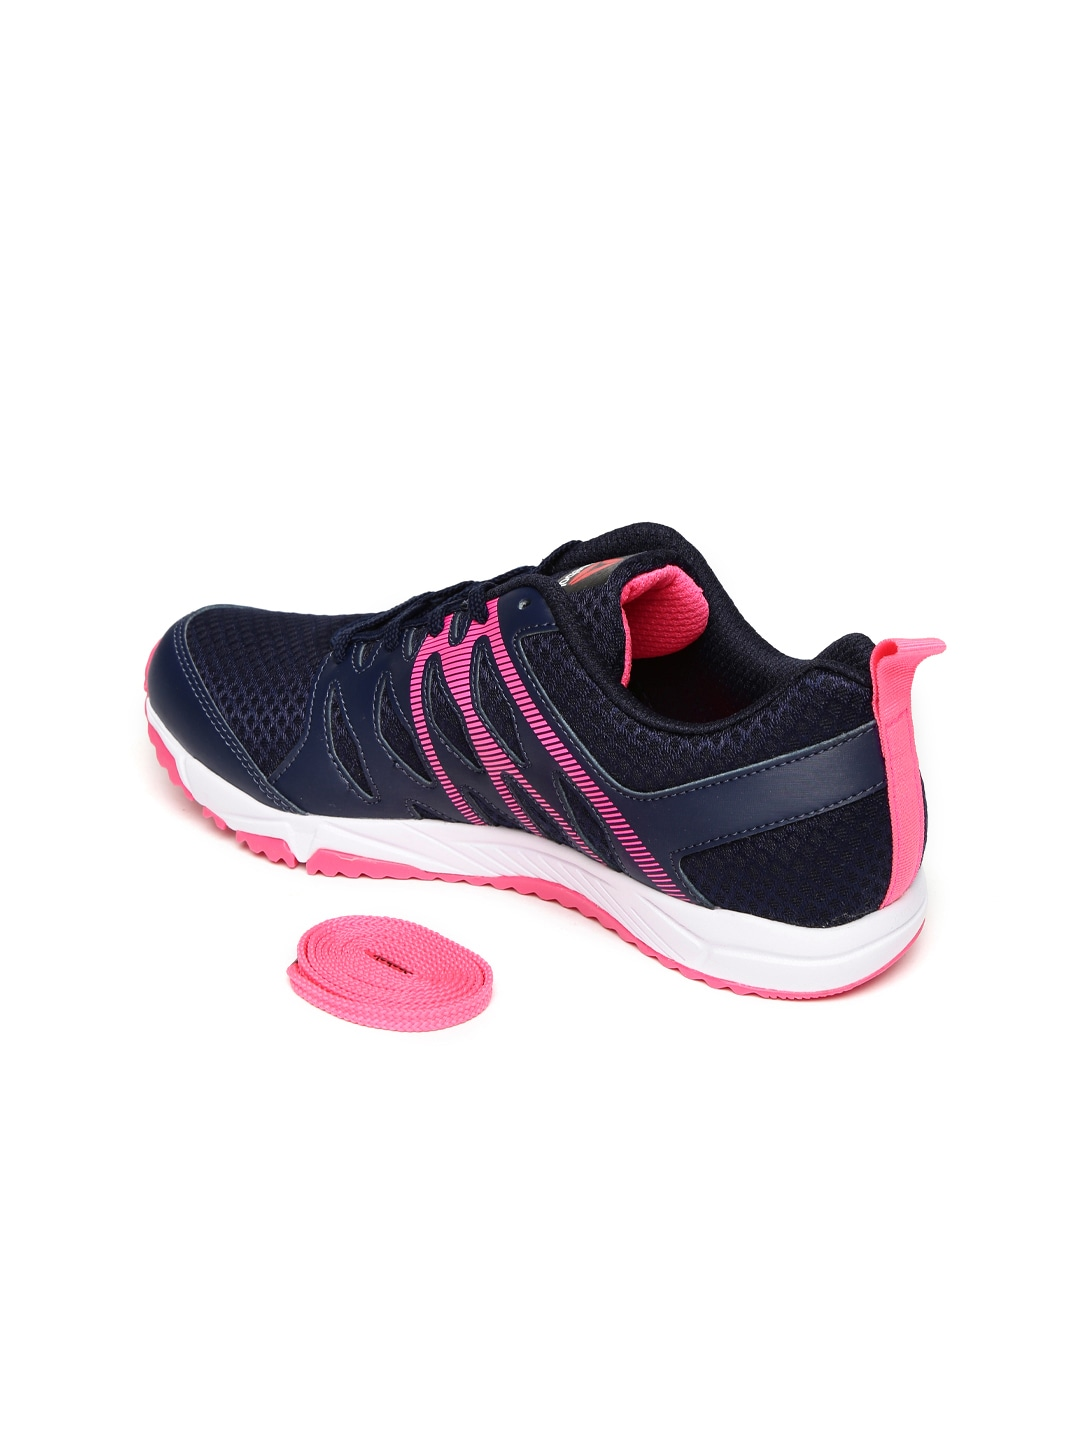 Buy ladies reebok shoes   OFF68% Discounted 9430e9ddd6